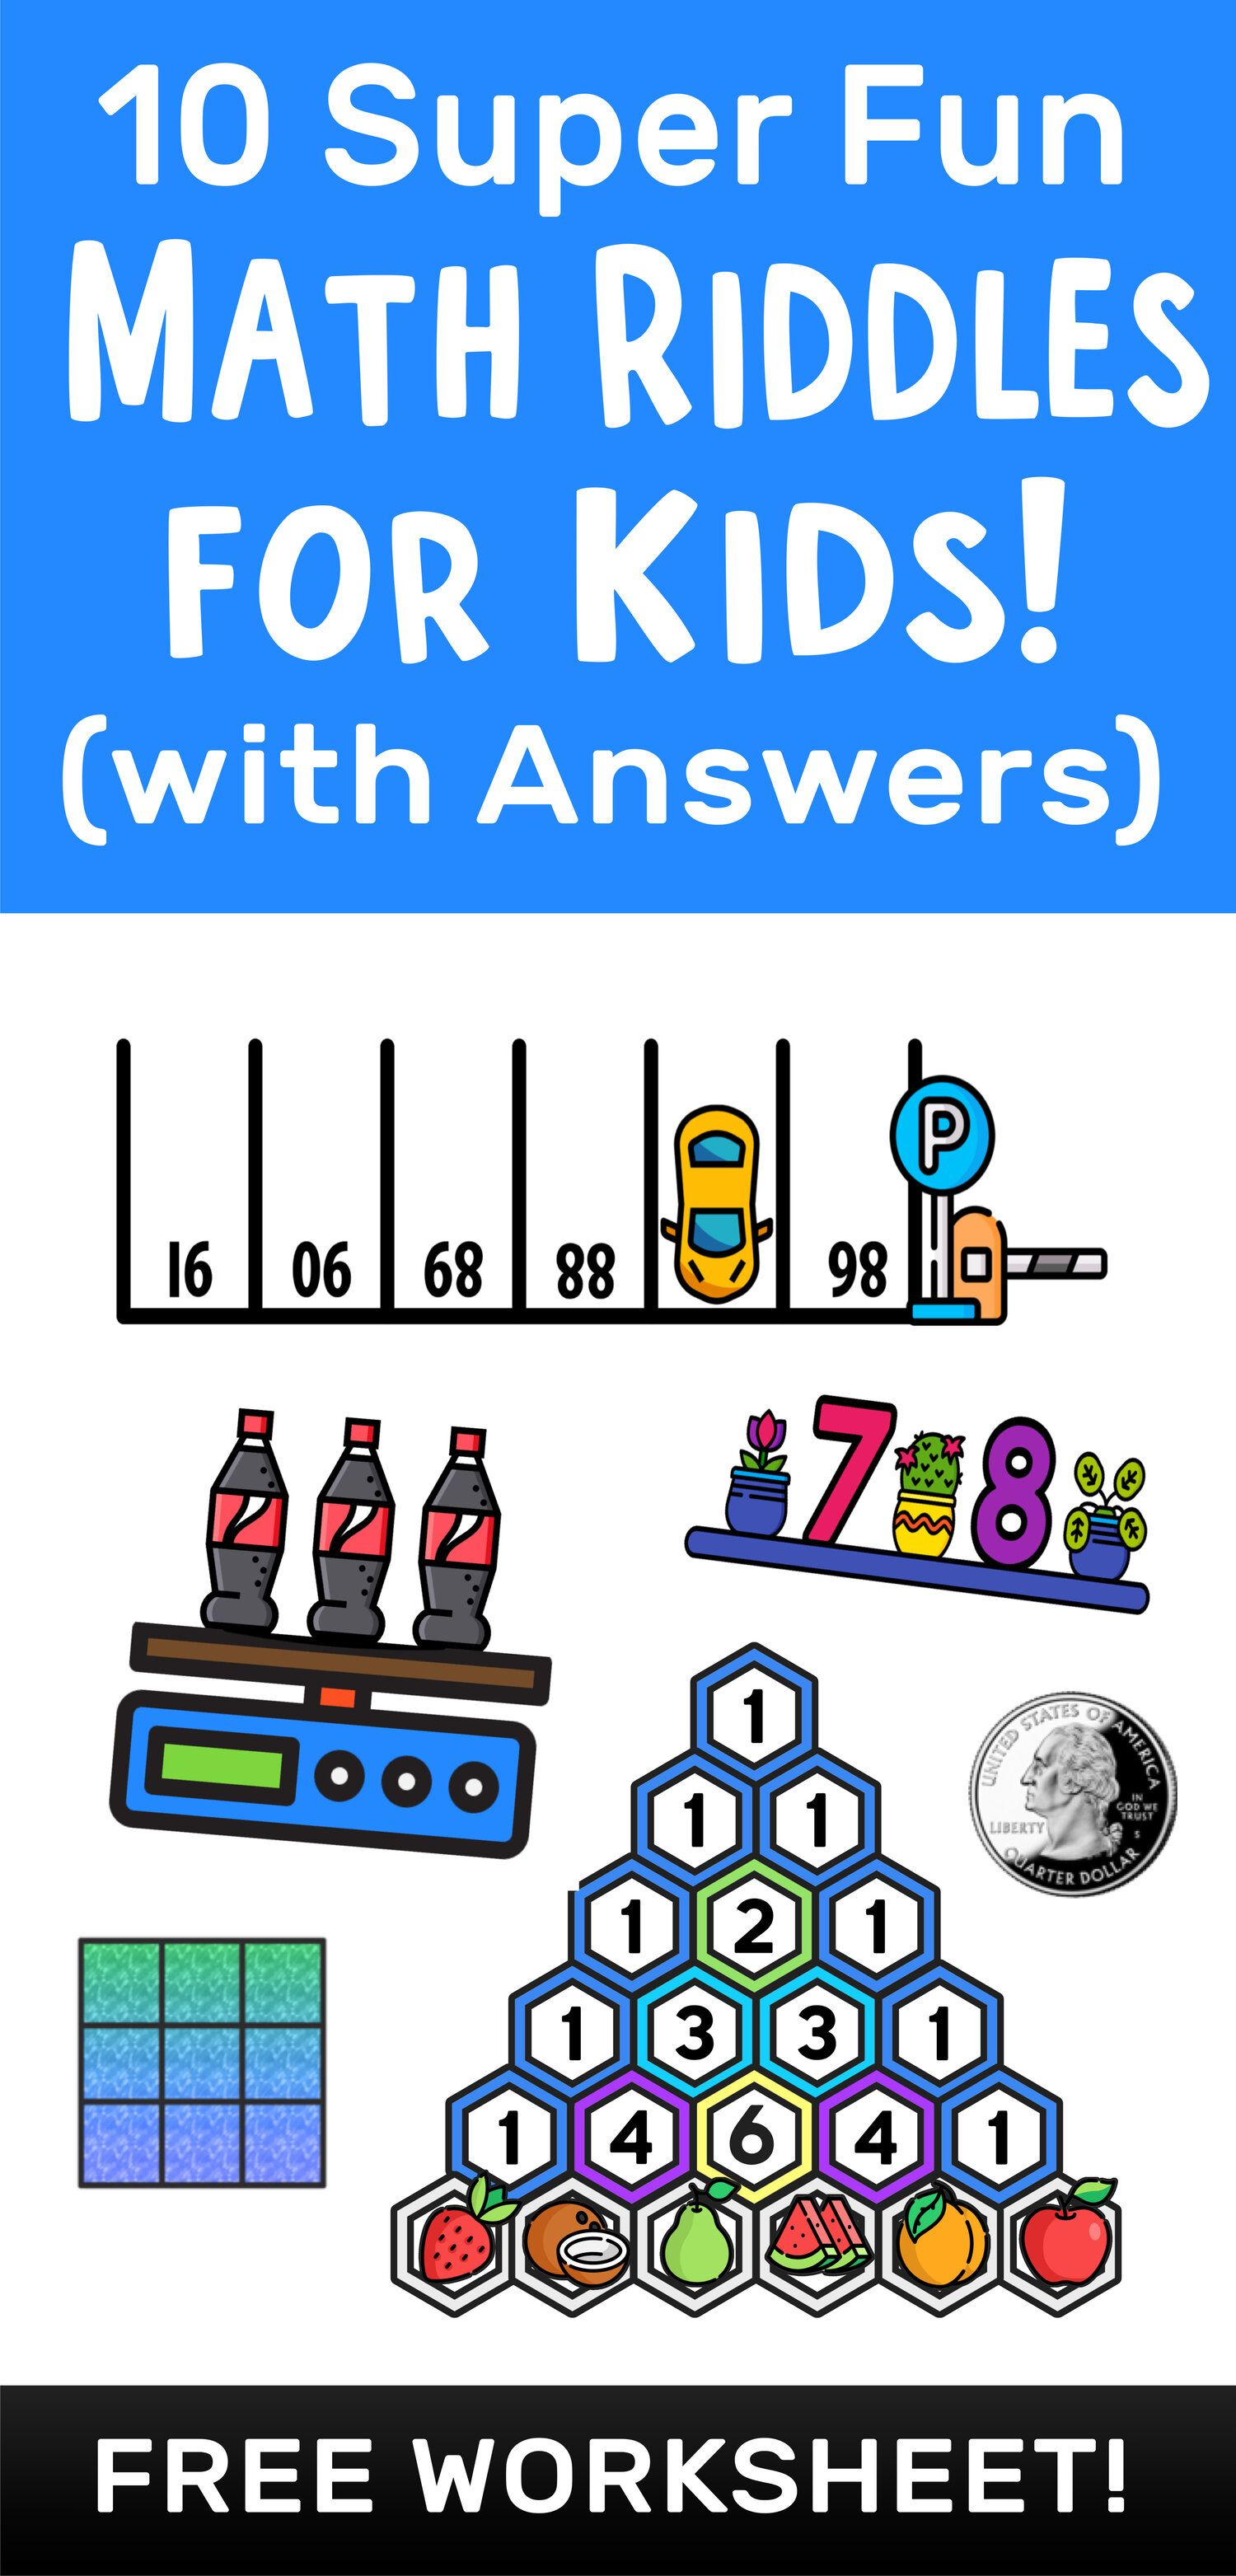 10 Super Fun Math Riddles For Kids Ages 10 With Answers